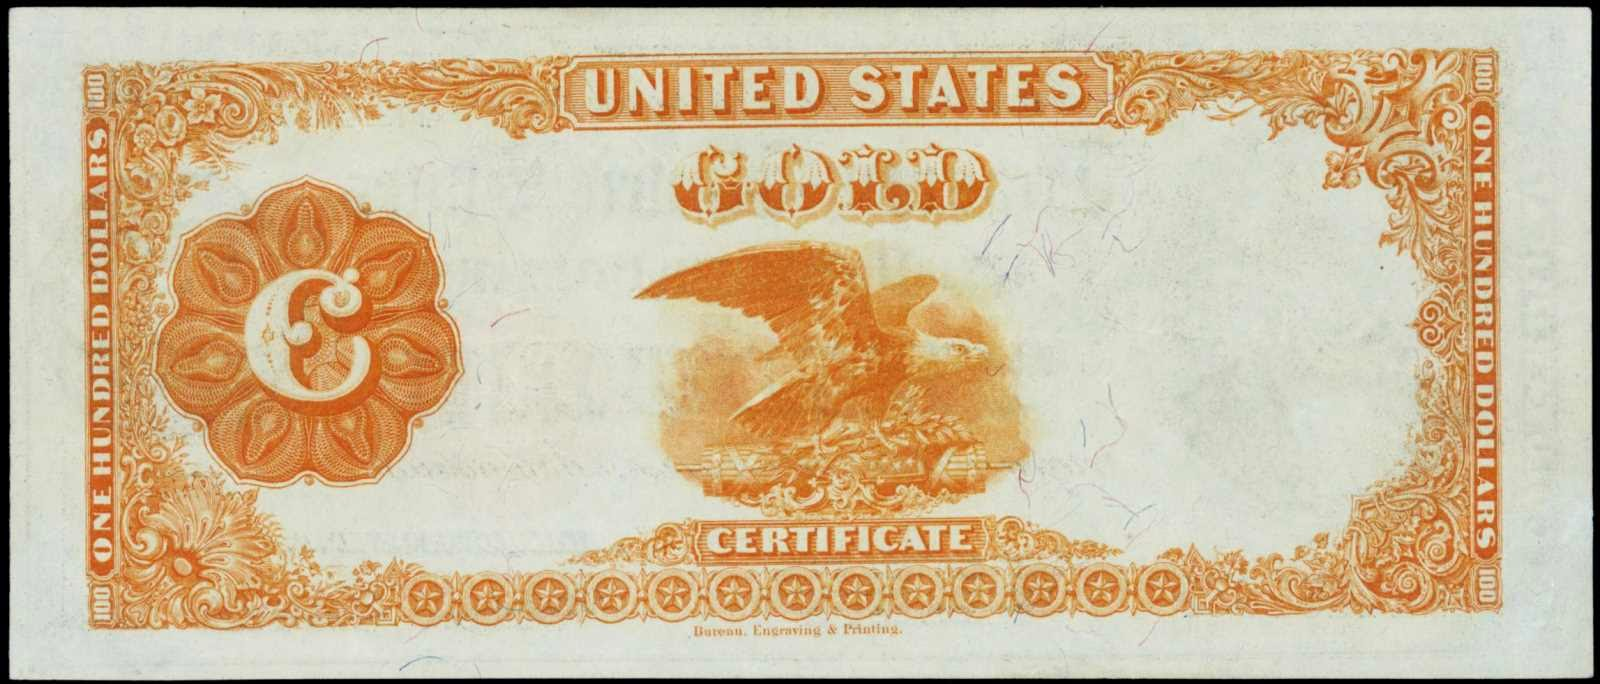 United States currency 1922 100 Dollars Gold Certificate